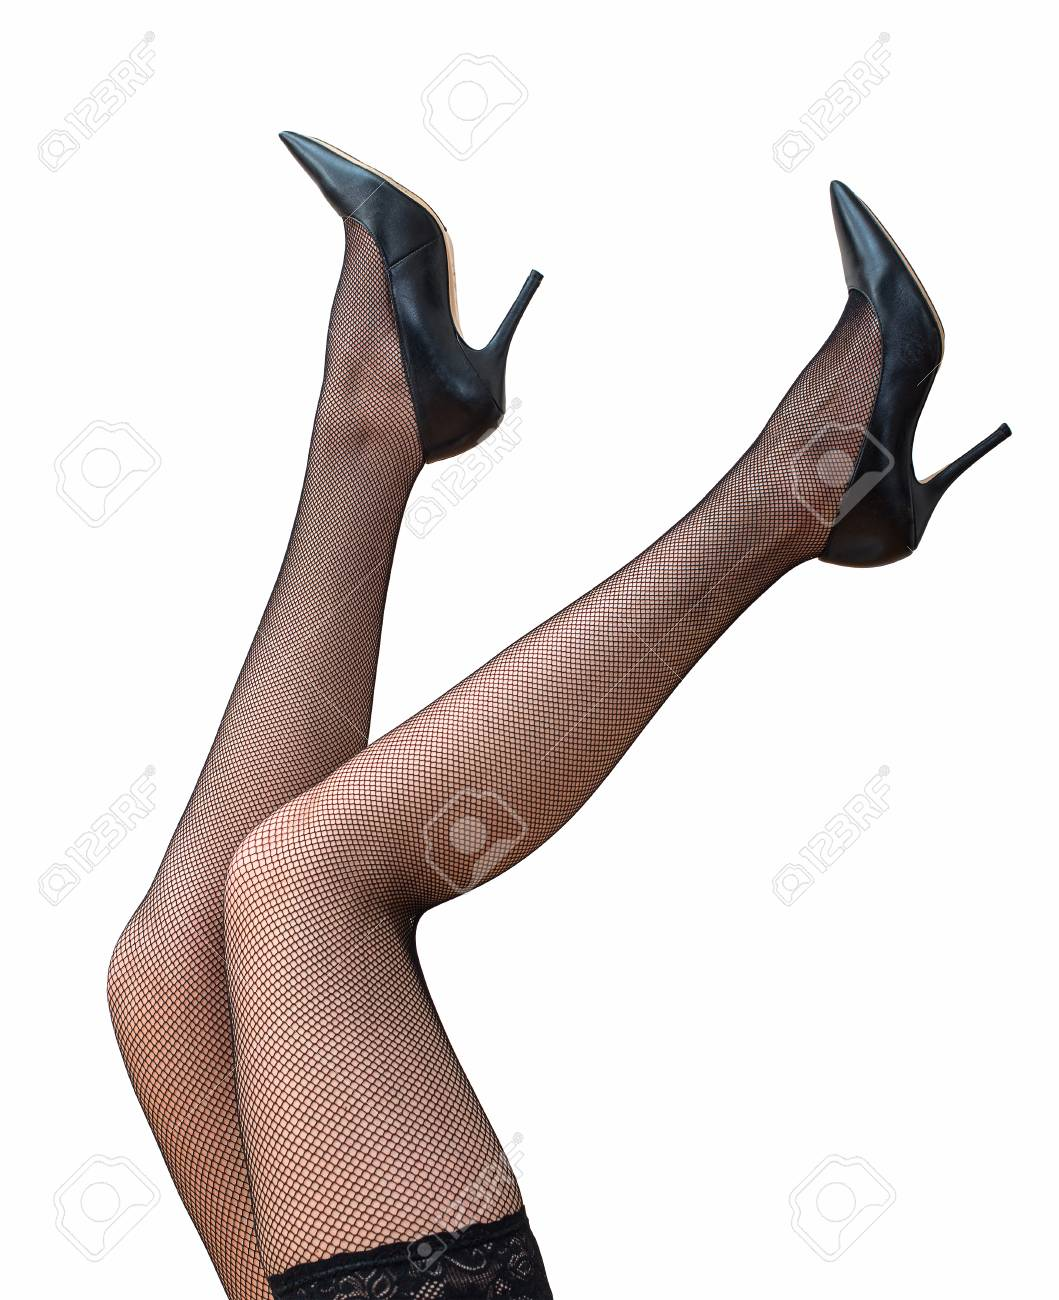 87976d75f22 Sexy female legs in black tights and shoes raised up. Stock Photo - 43207193